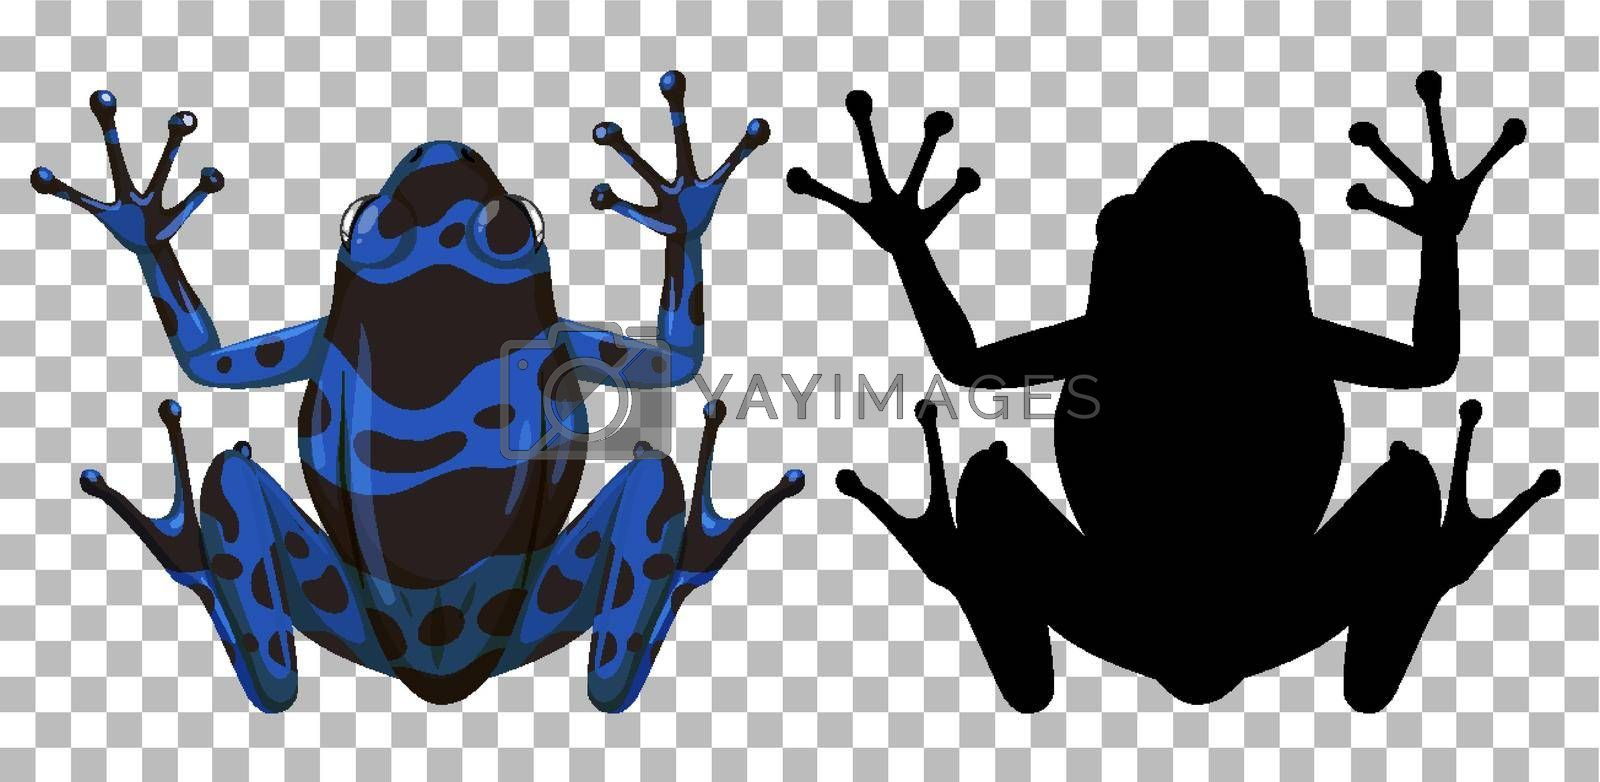 Blue poison dart frog with its silhouette on transparent background illustration